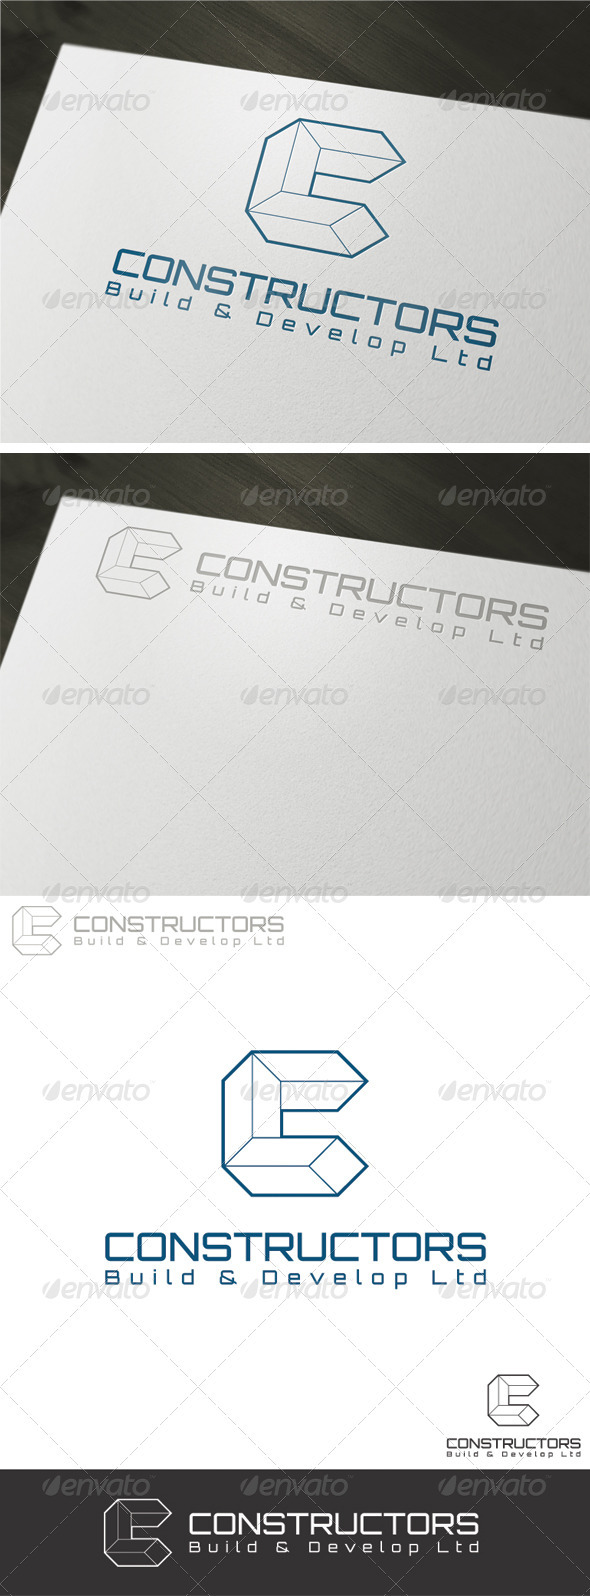 Constructors Logo Template - Vector Abstract